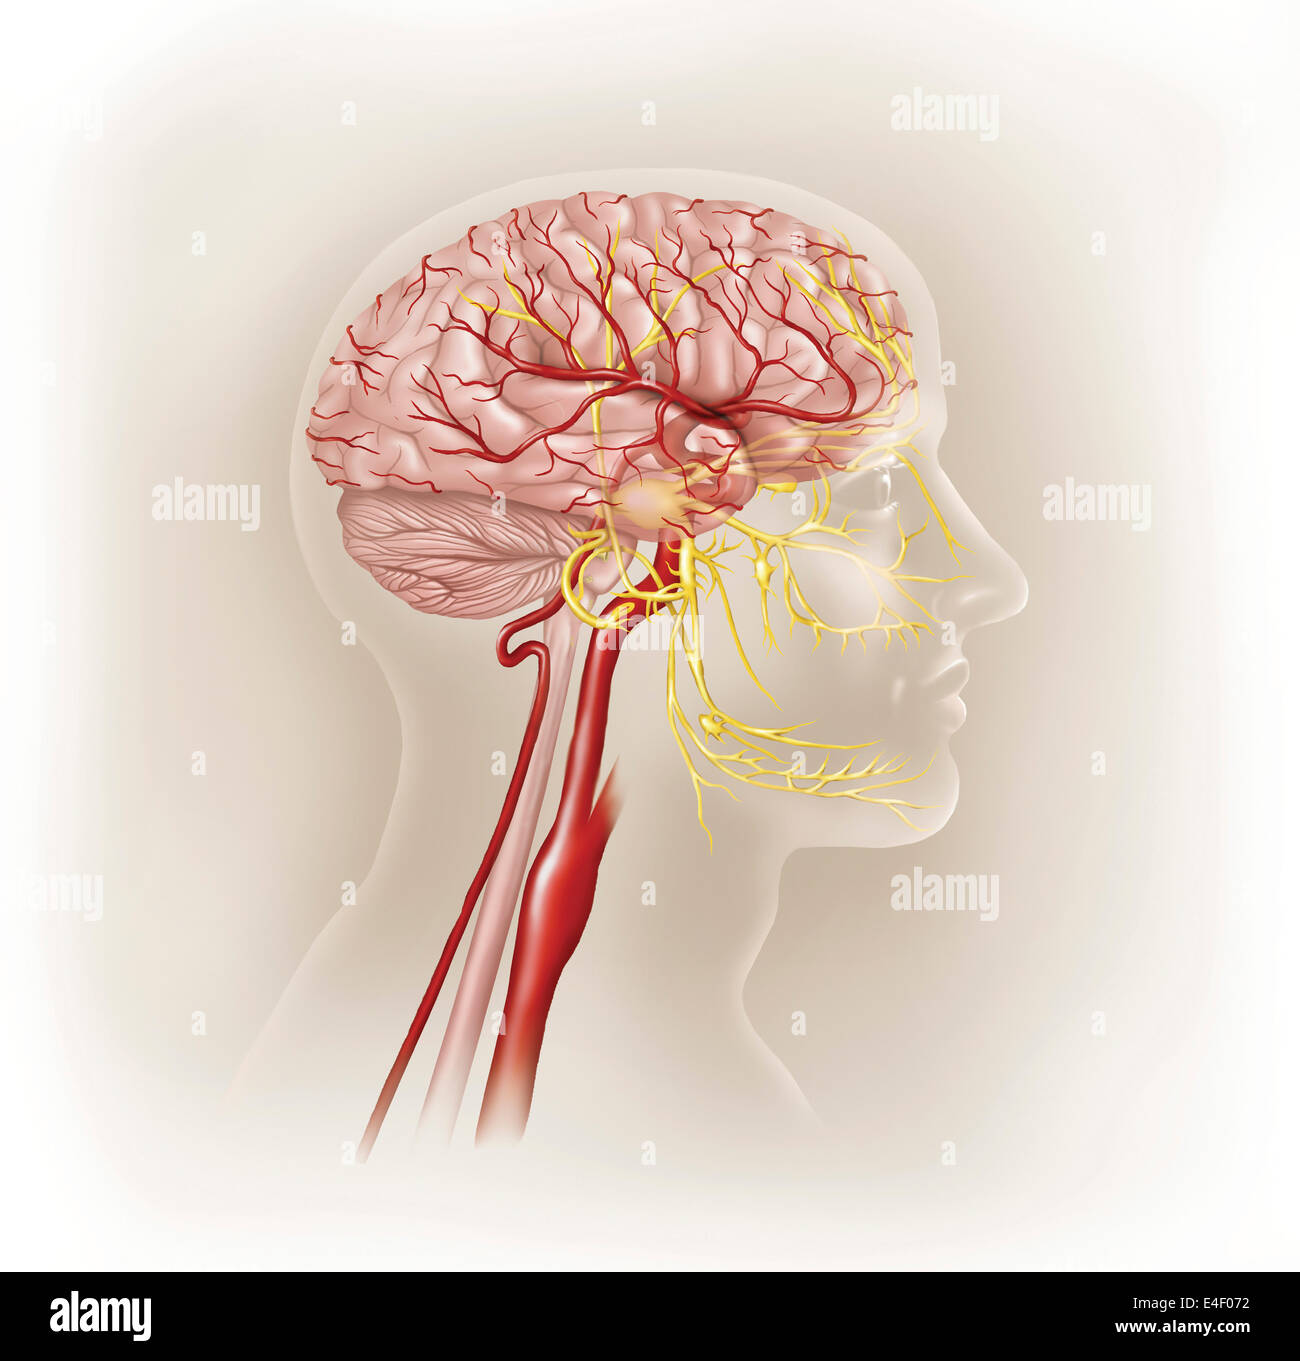 Detail of arteries of the human head and the trigeminal nerve. - Stock Image